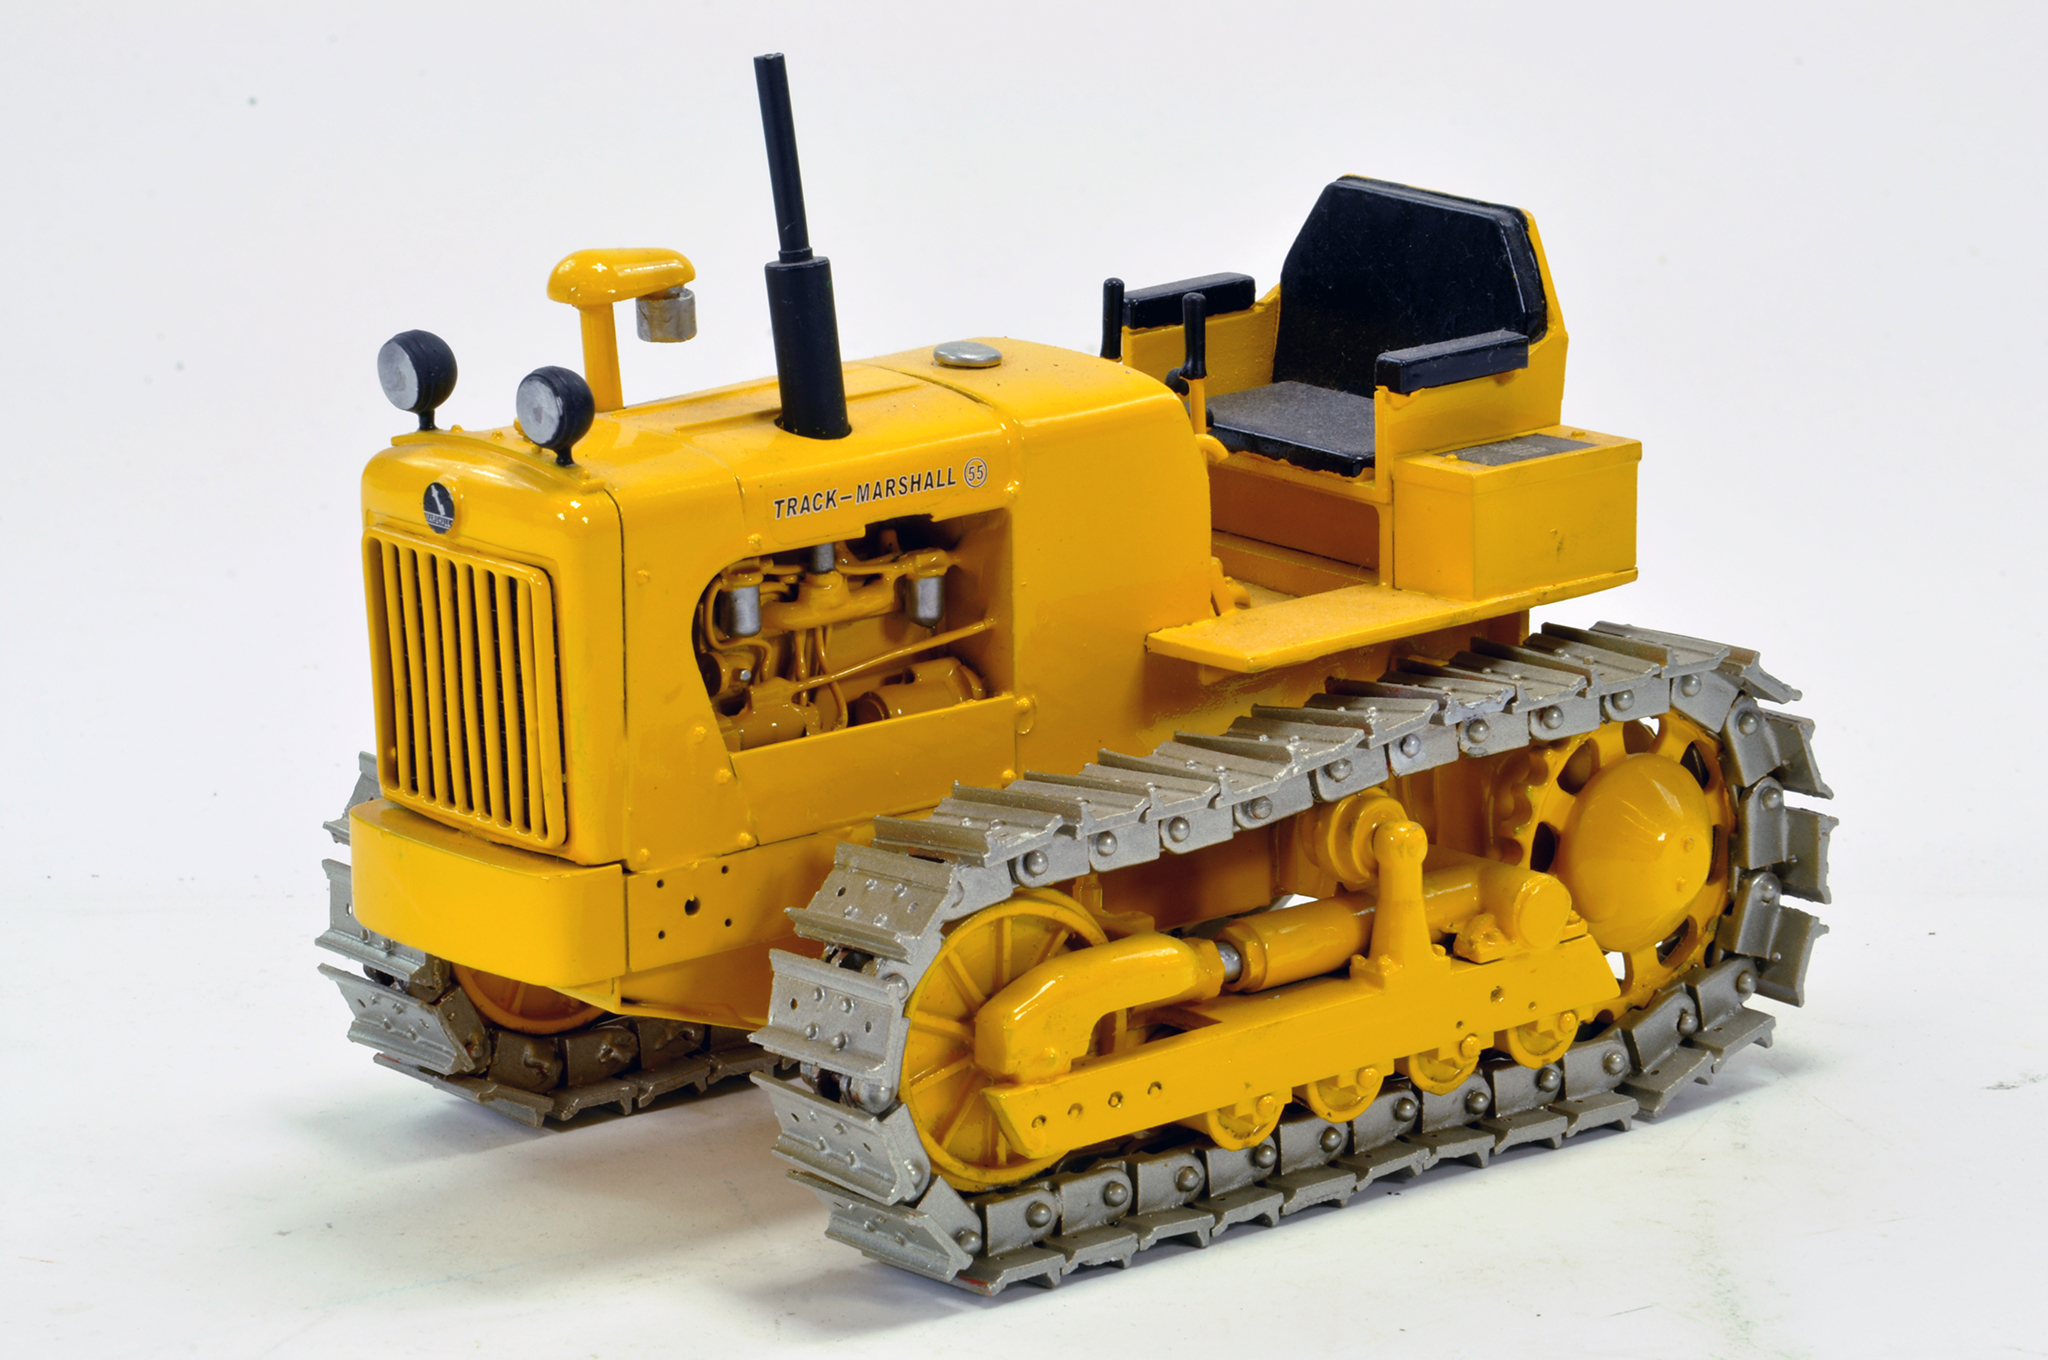 Lot 549 - RJN Classic Tractors 1/16 Hand Built Track Marshall 55 Crawler Tractor. Limited Edition 45 of 55